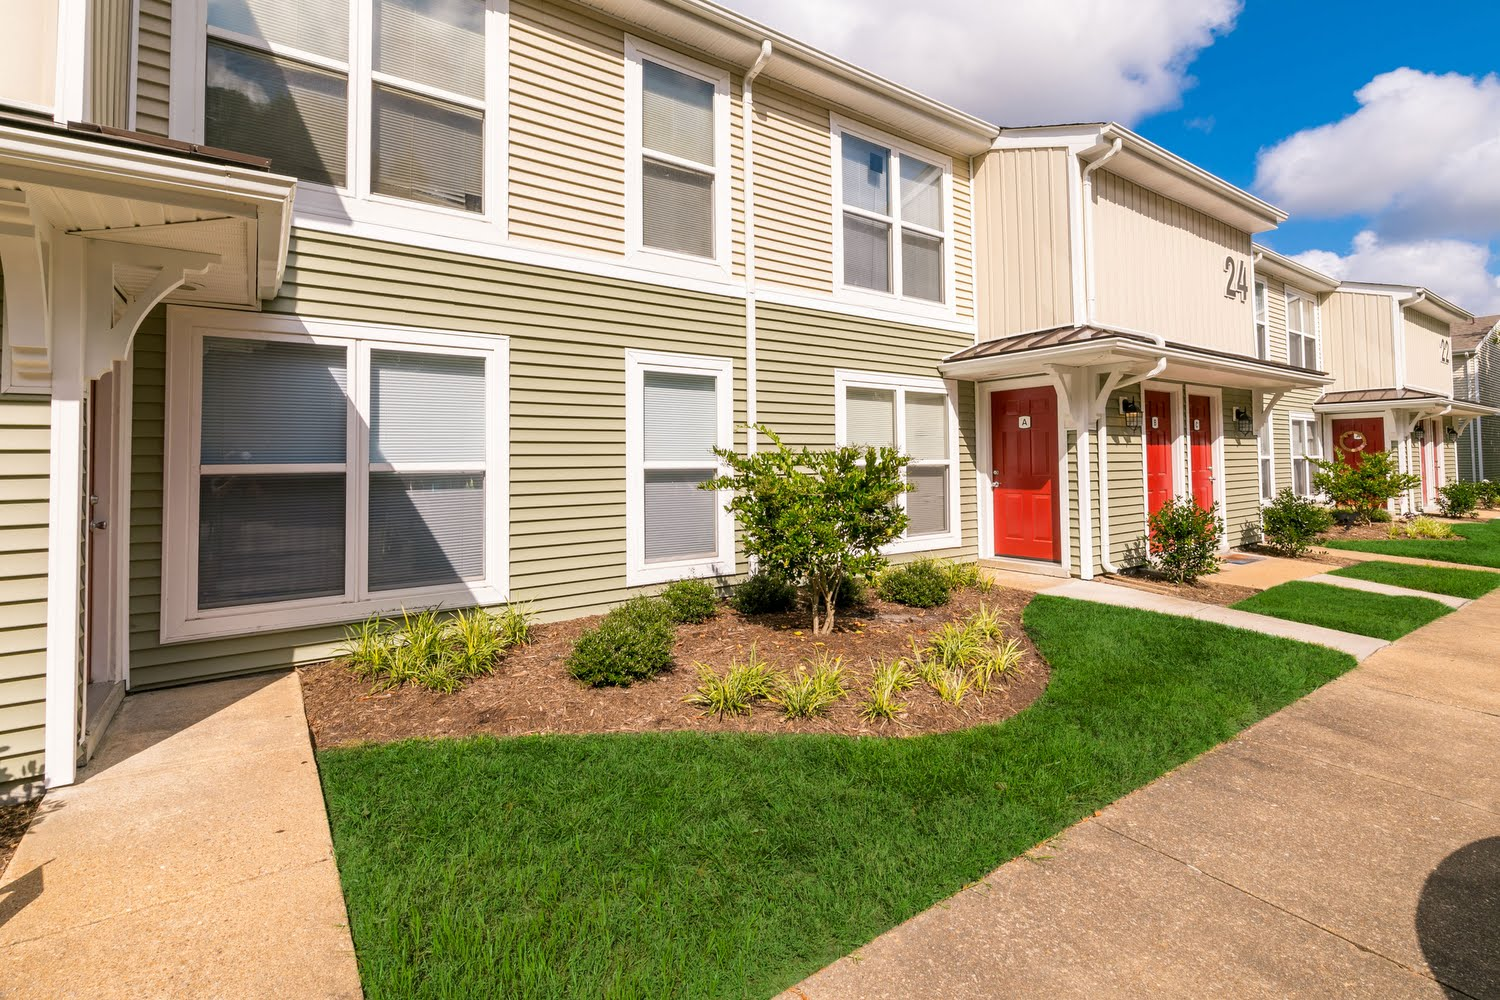 Kingsbridge apartments for rent in chesapeake virginia for 3 bedroom apartments in chesapeake va